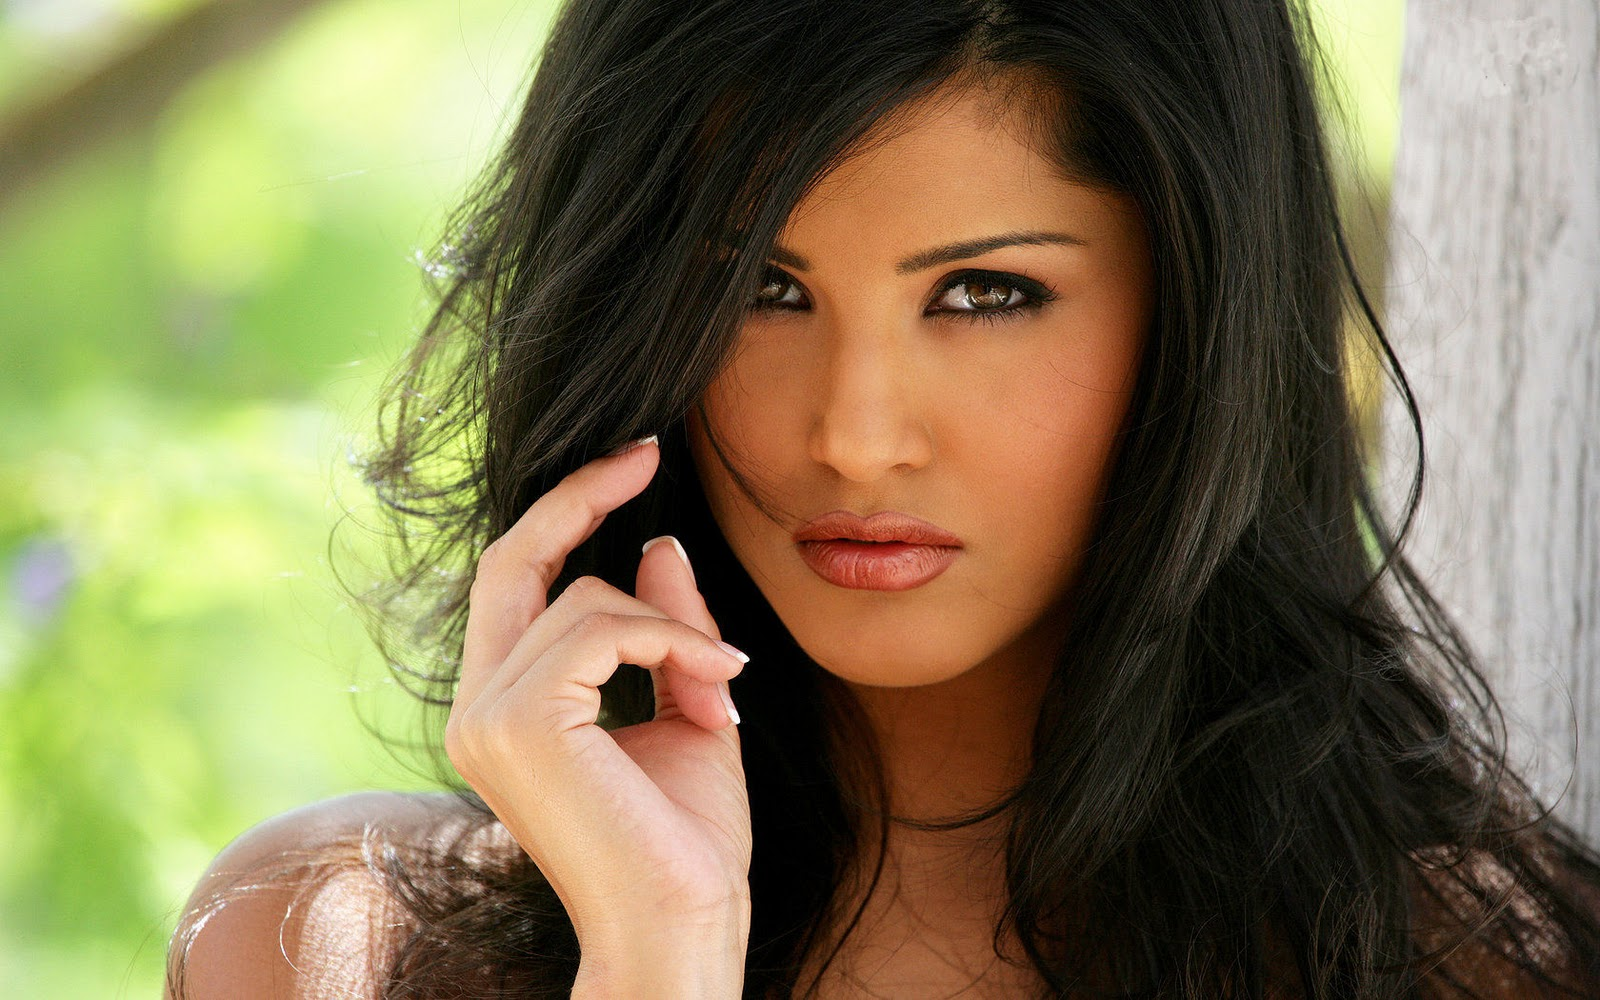 Bollywod Actress Sunny Leone Hot Hd Wallpaper Download -5050